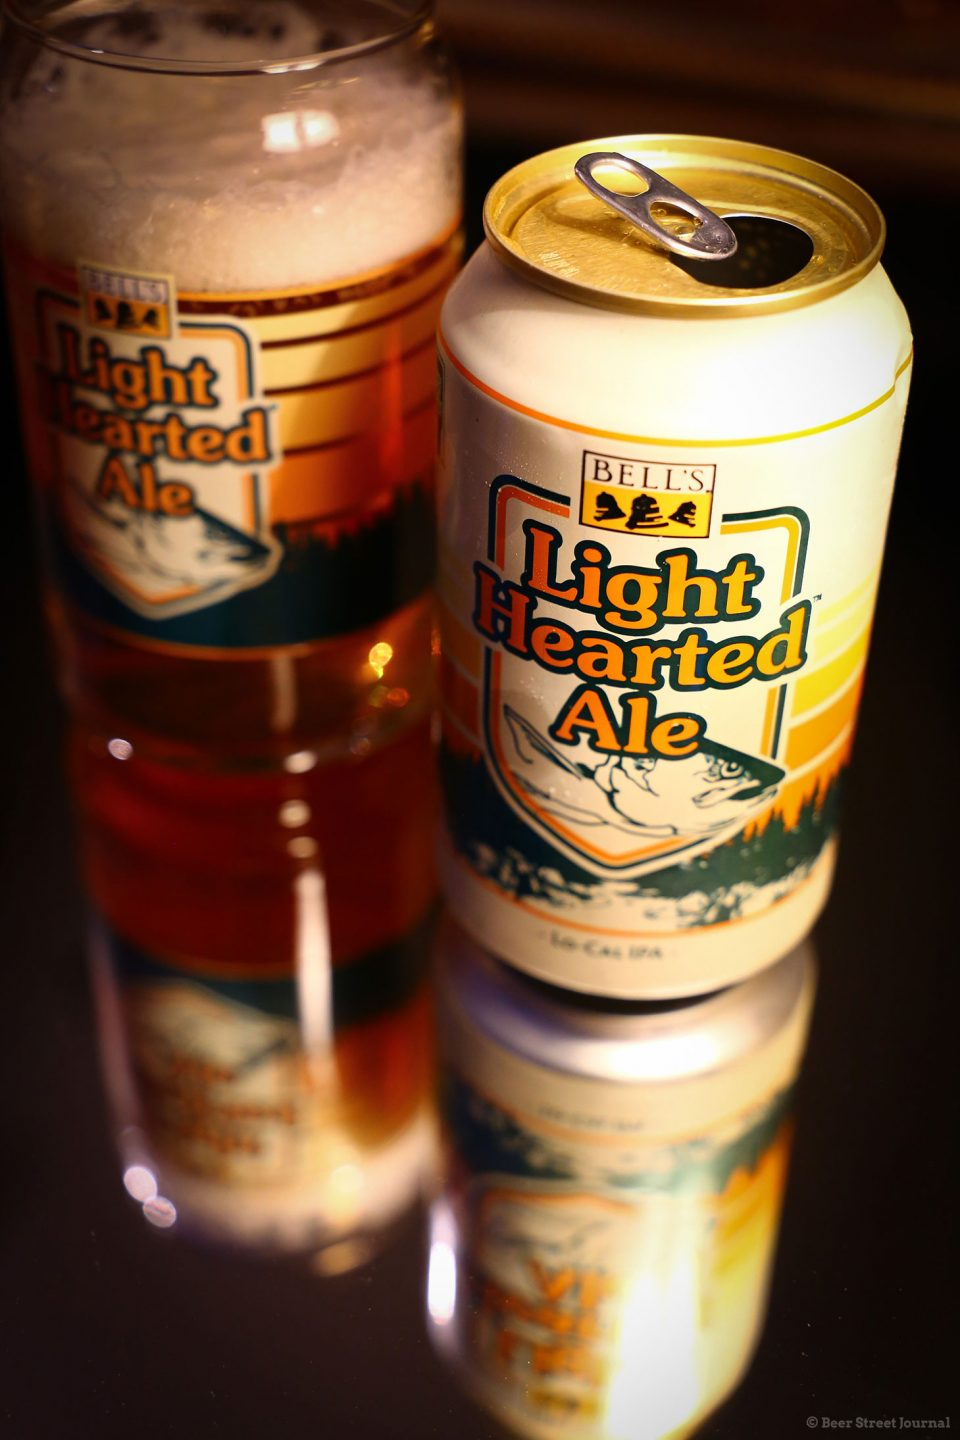 Bell's Light Hearted Ale Cans